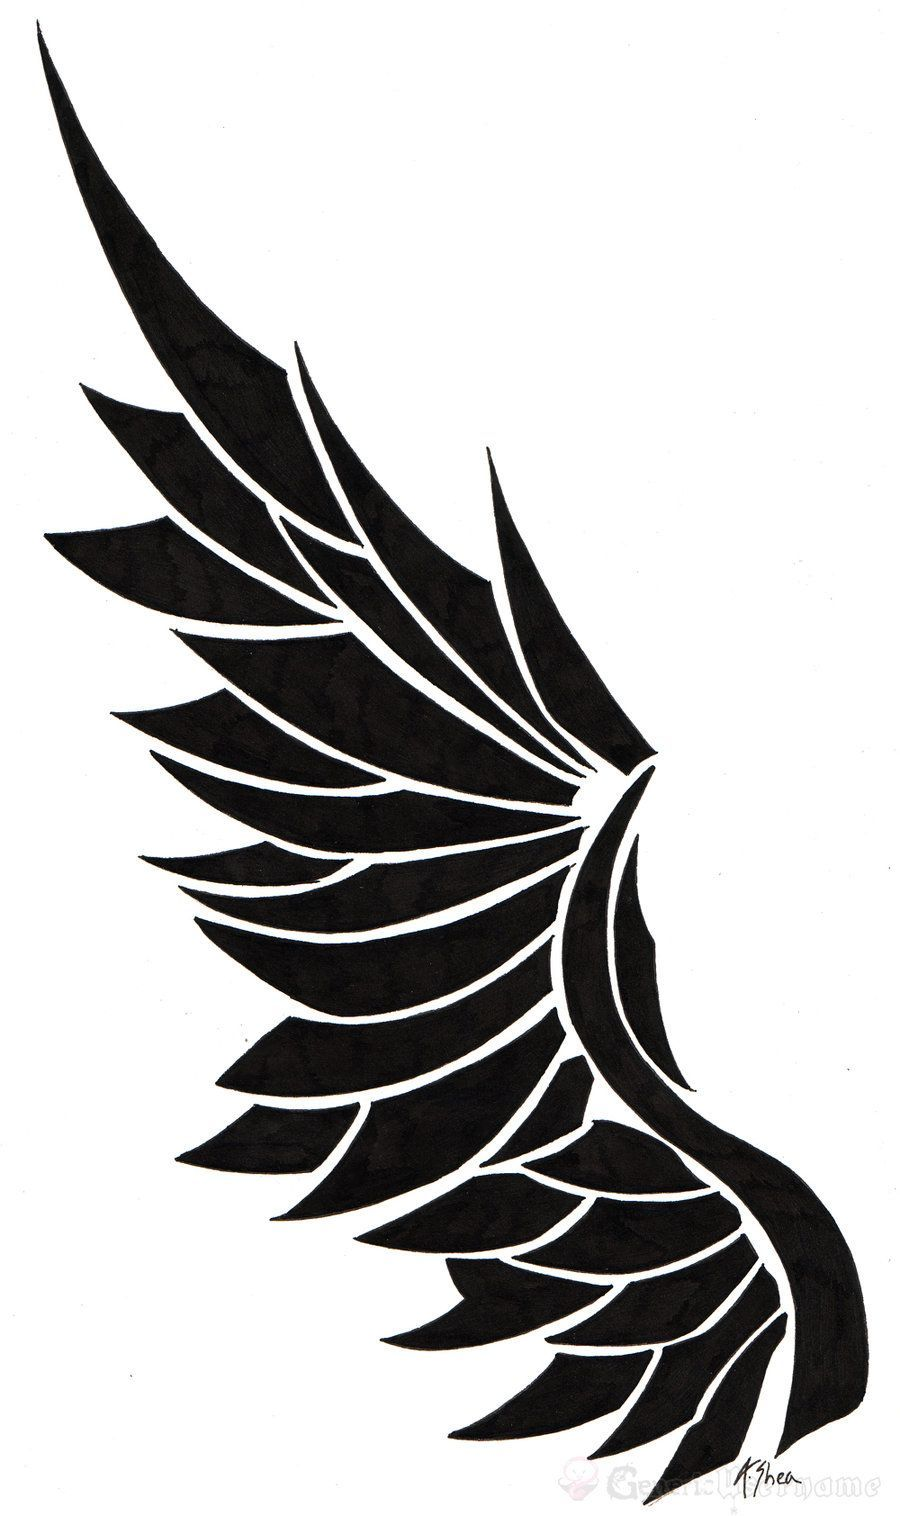 Tatoo Angel Wing By Generic On Deviantart Wing Tattoo Designs